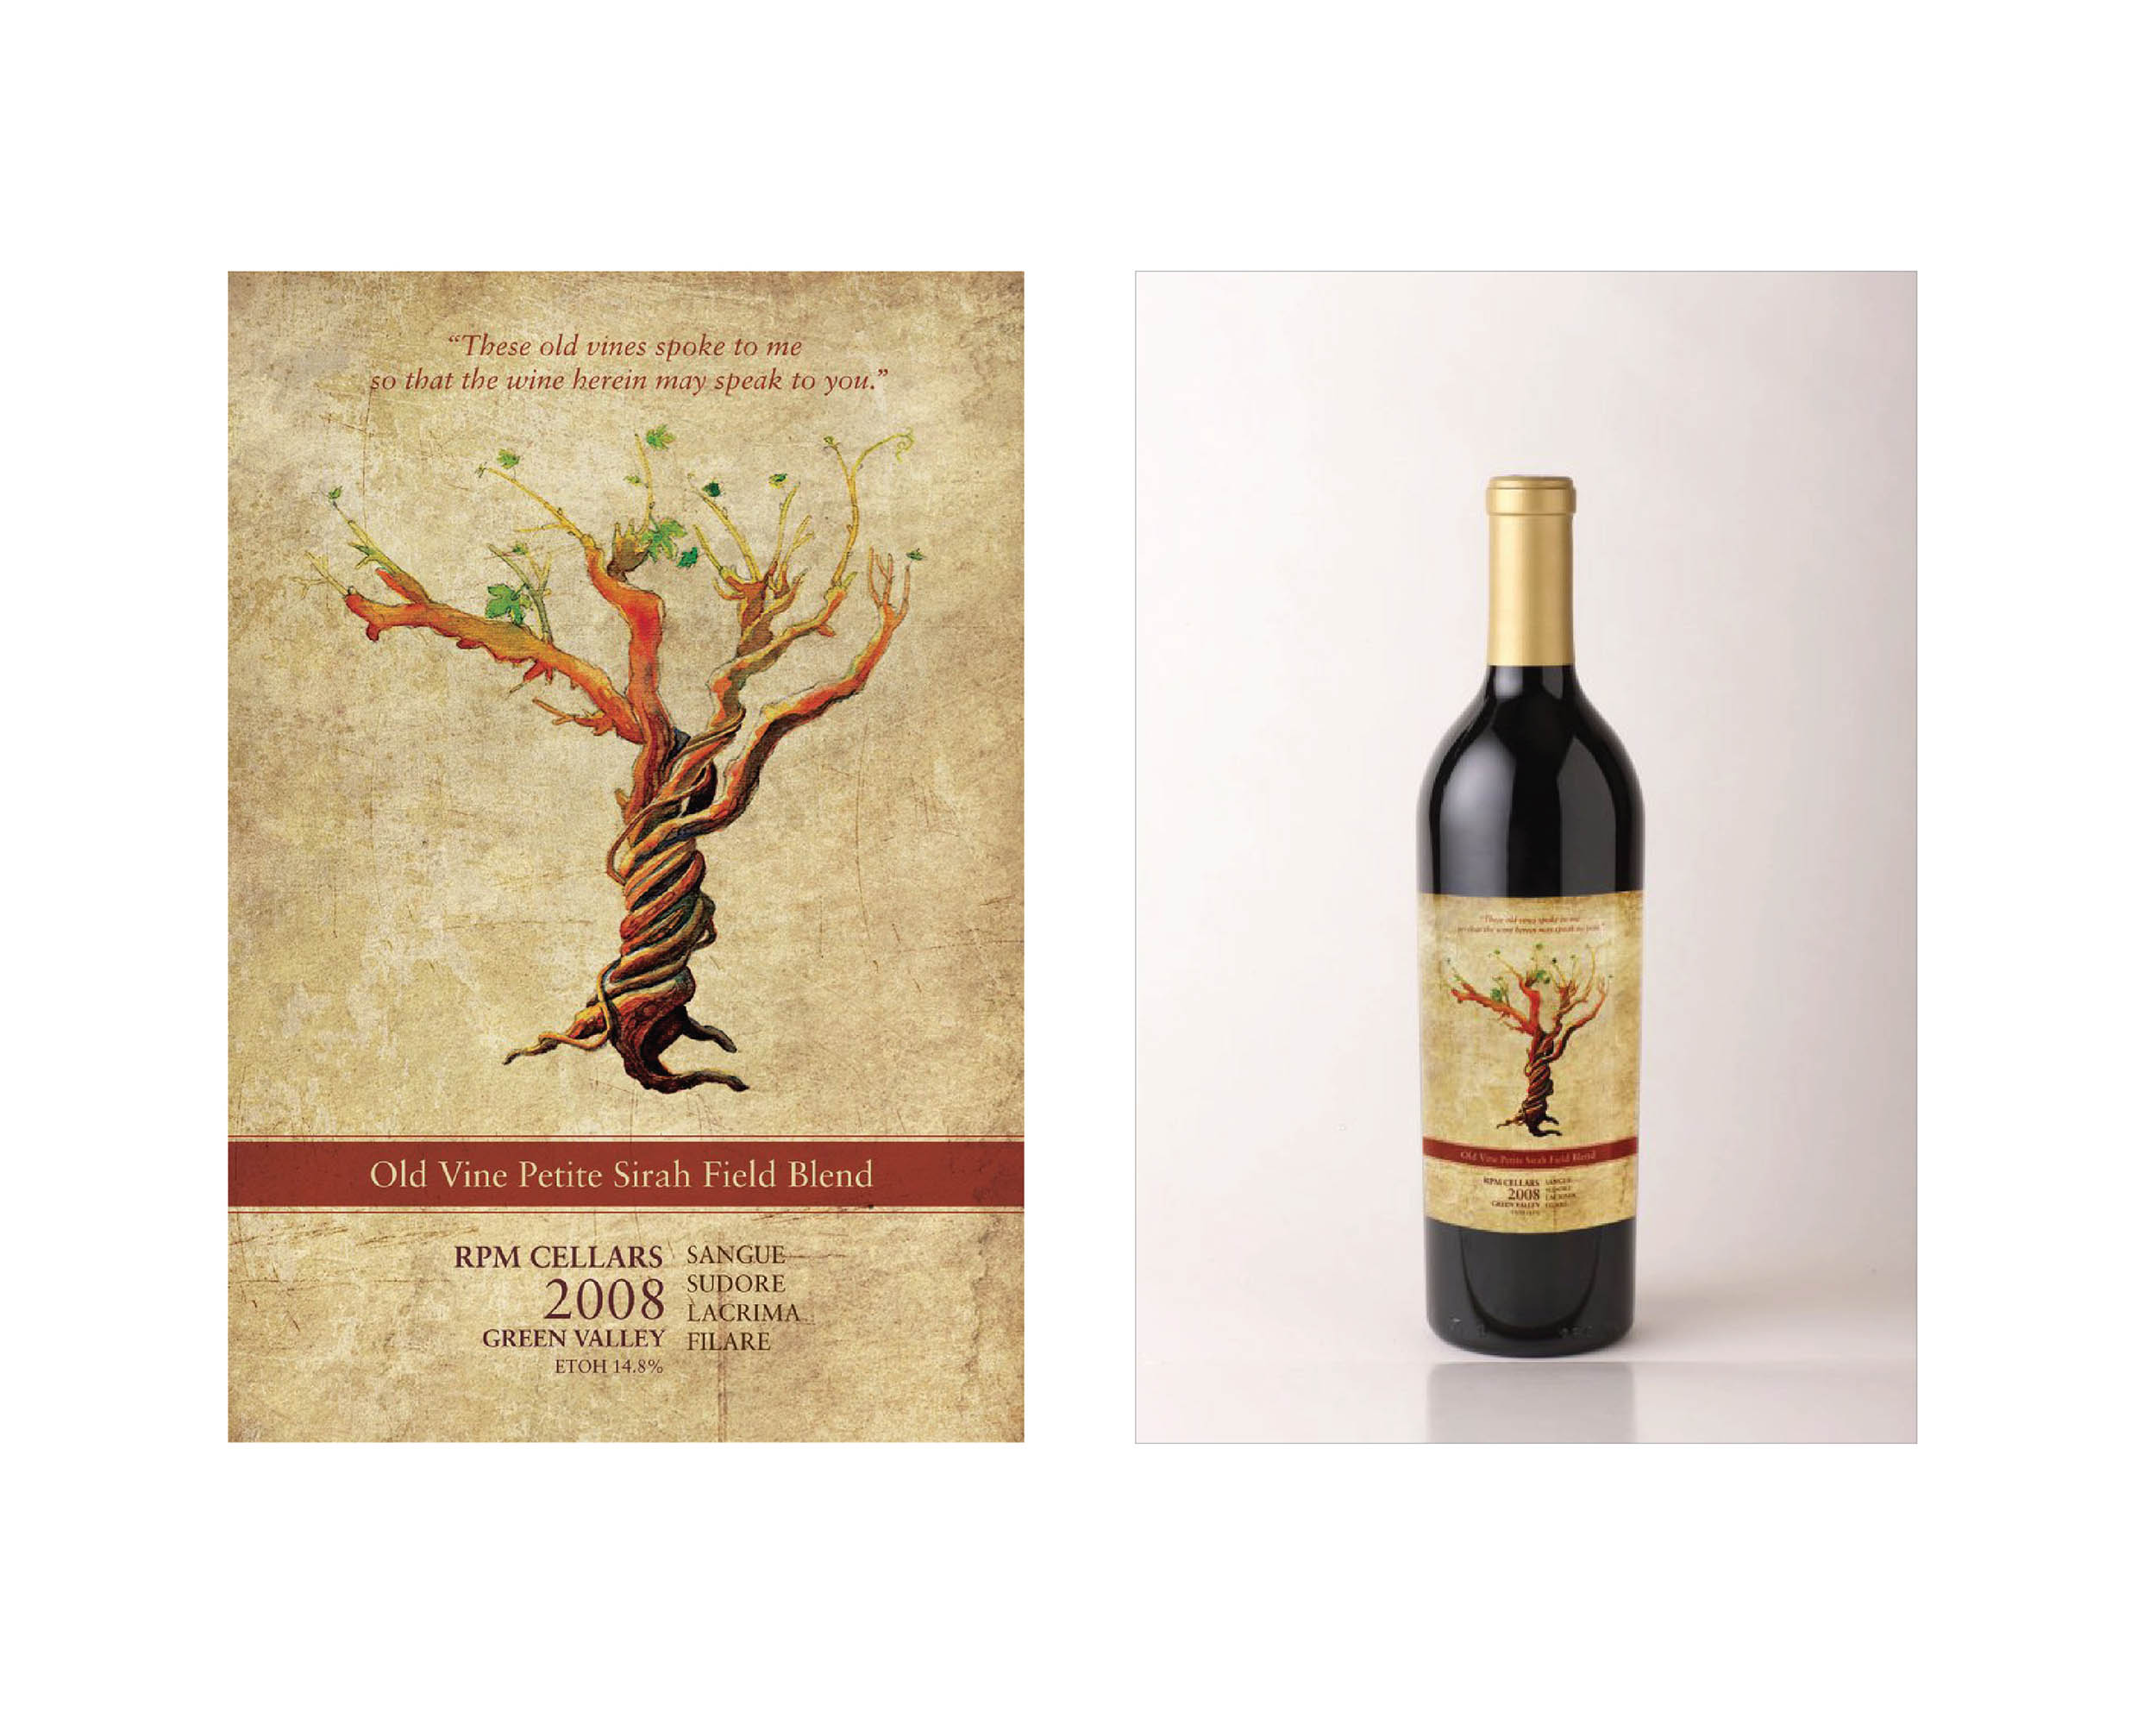 RPM Cellars Illustration and Wine Label Design